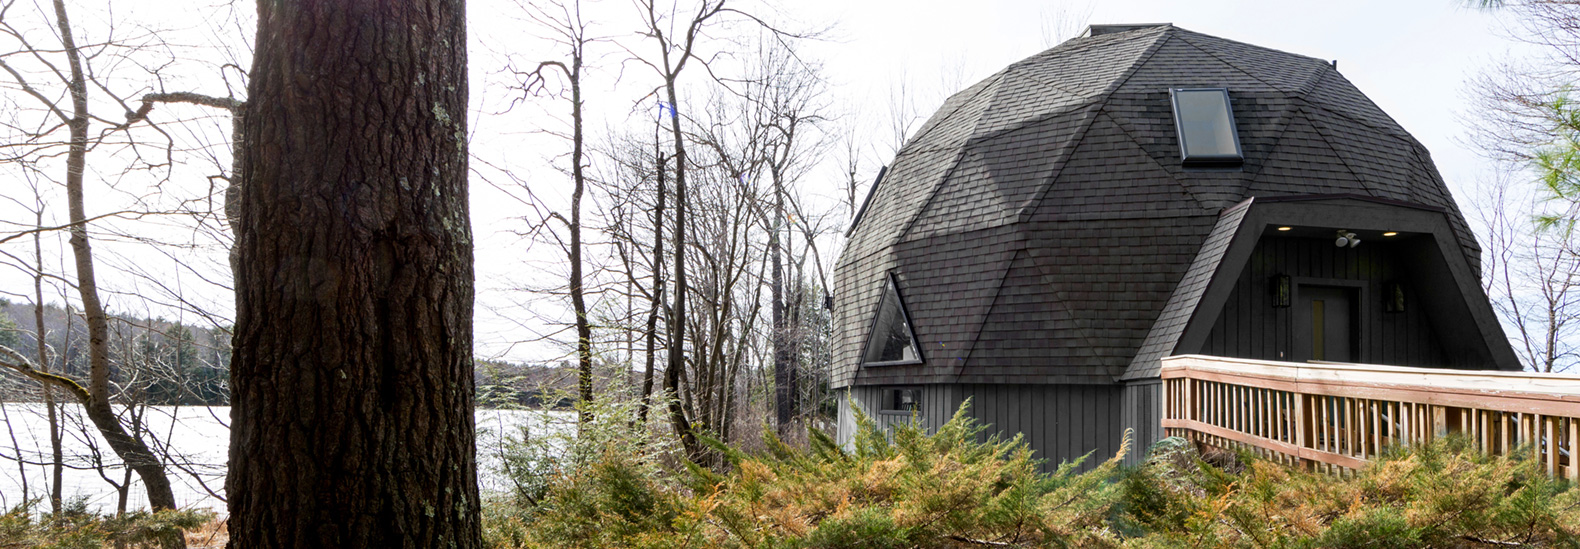 Designer stylishly revamps a geodesic dome